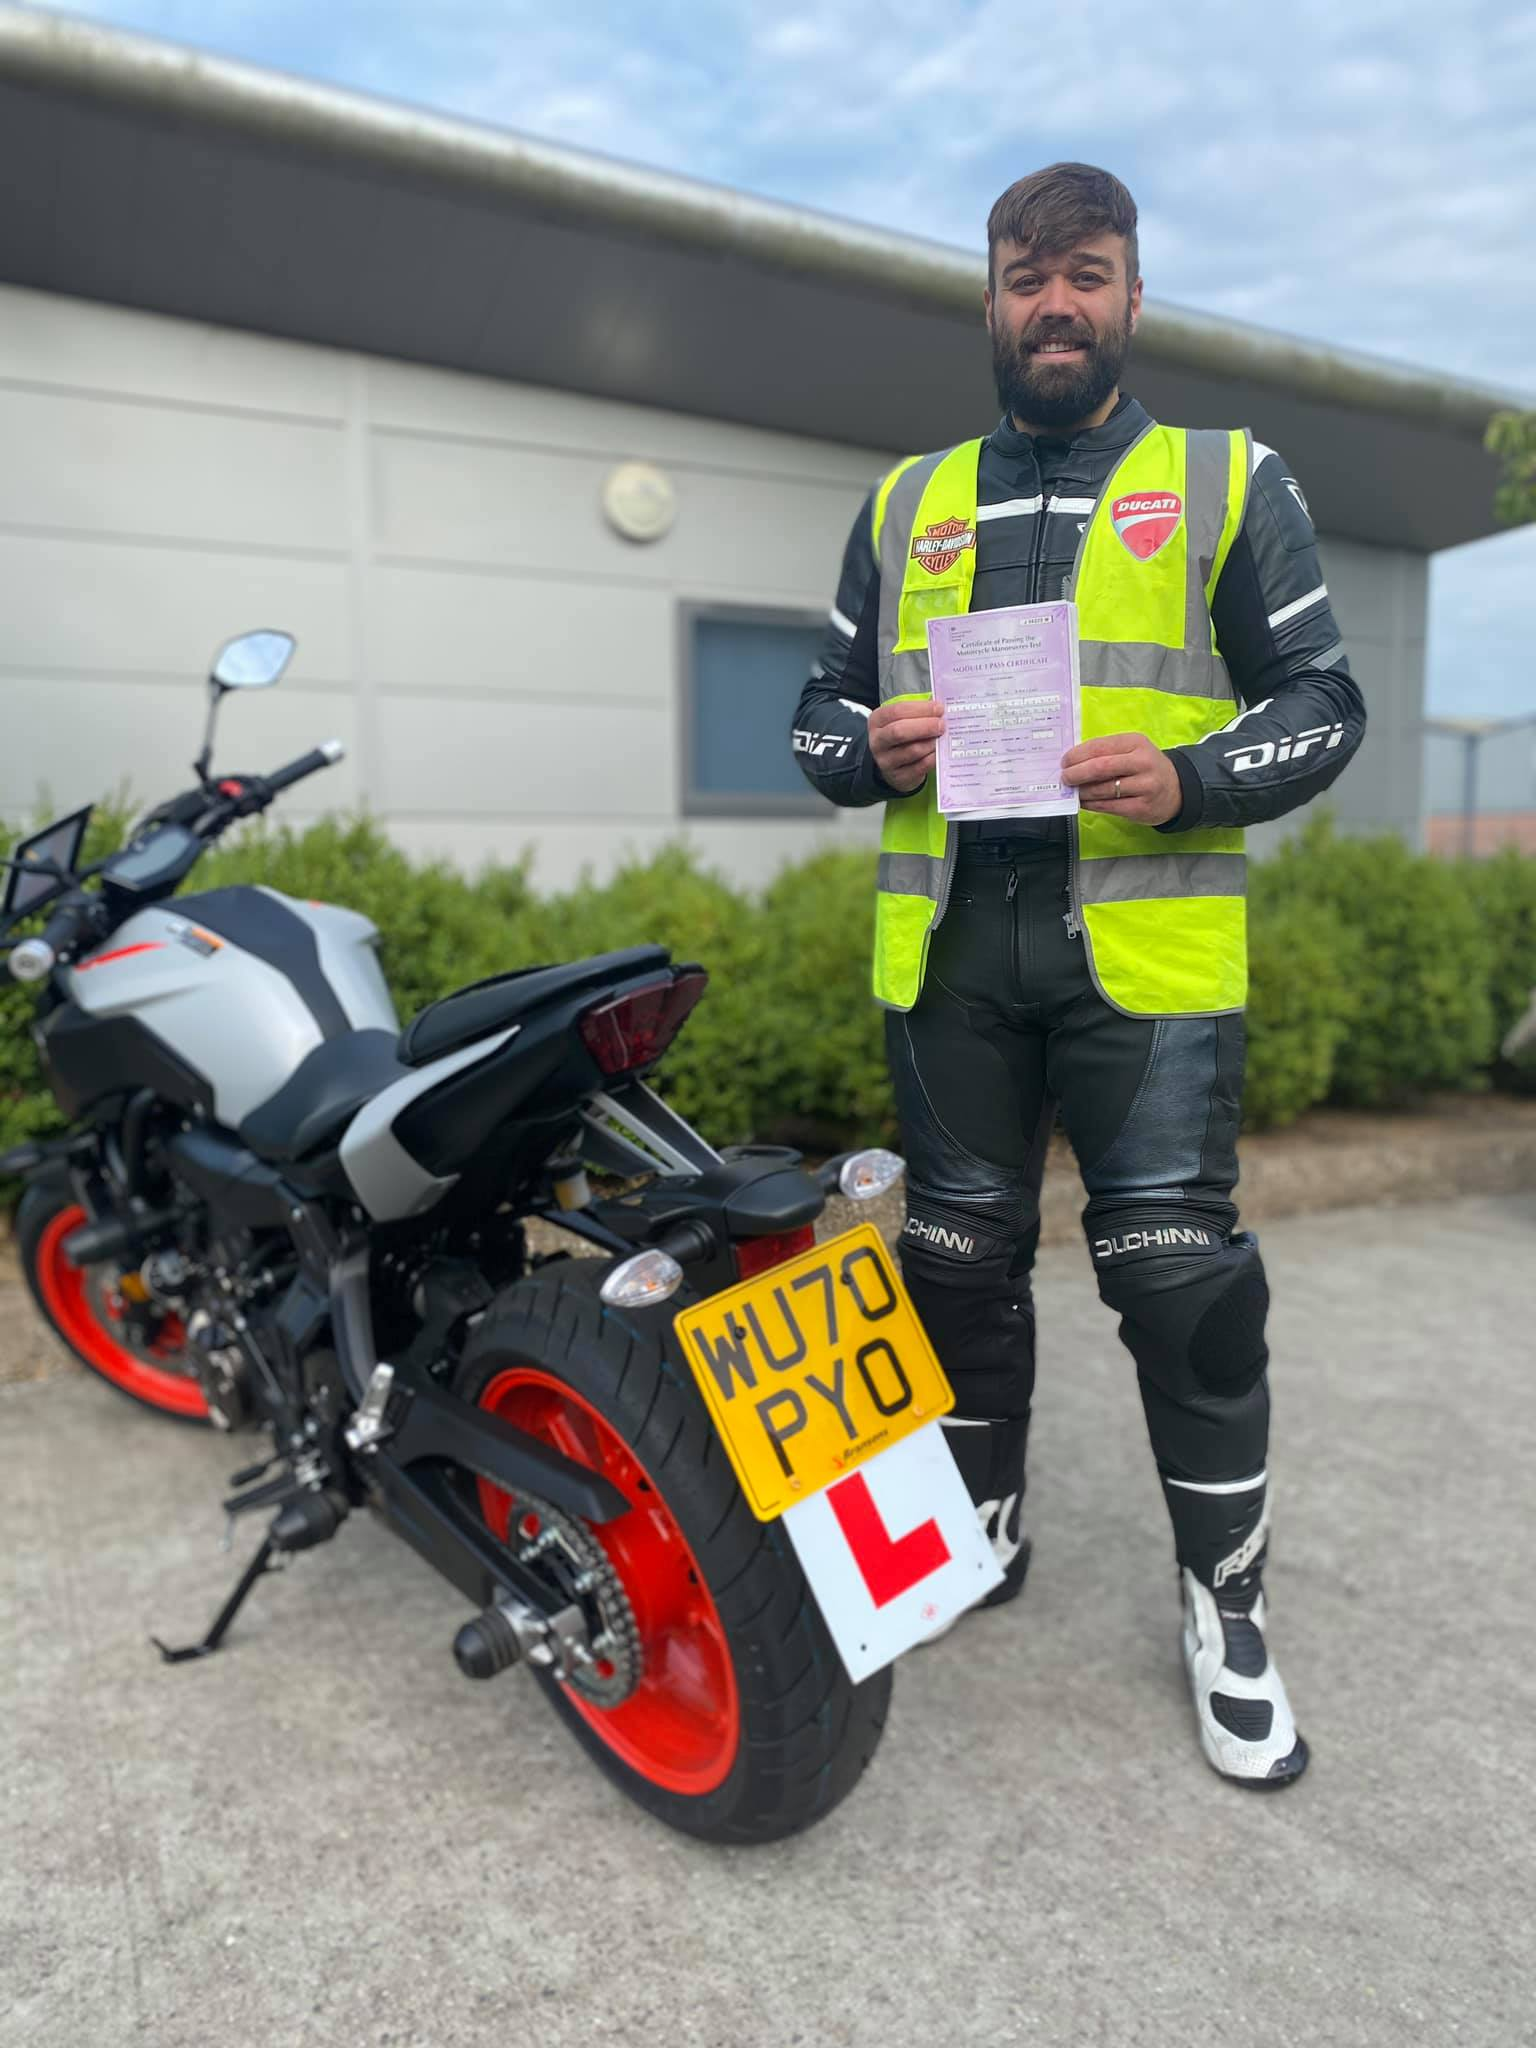 Wincanton Rider on New Yamaha MT07